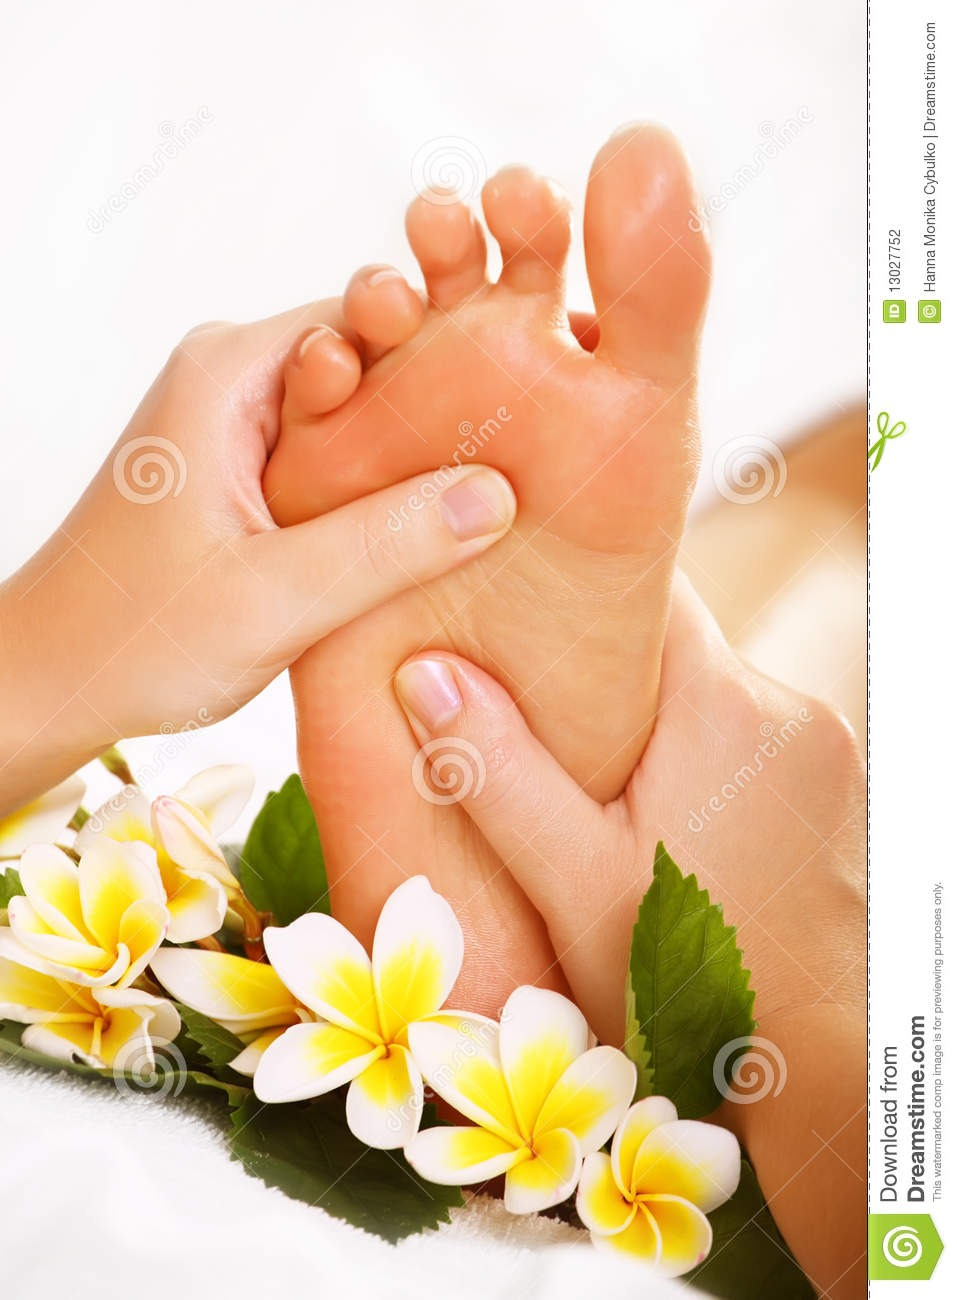 Rub the muscle! Rubbing it will relax and loosen it. It will also provide instant relief